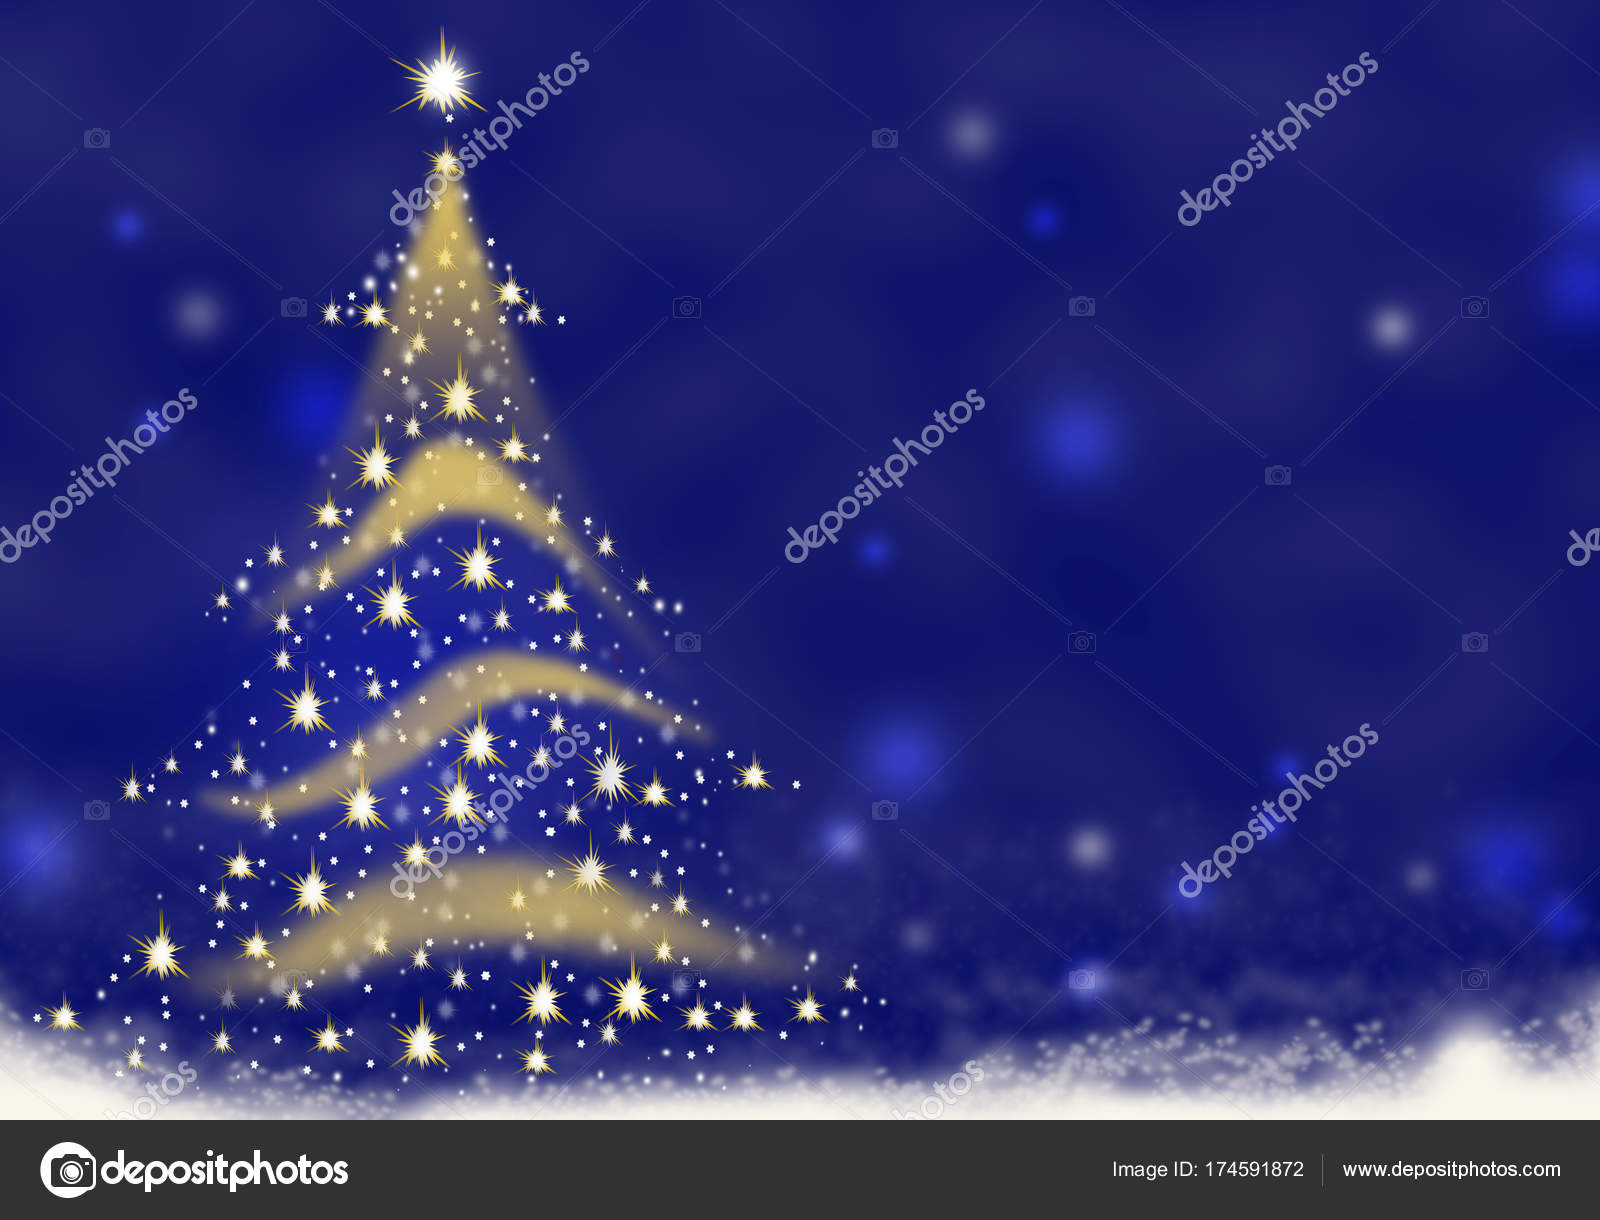 Christmas Tree Gold Lights Formed From Stars Background Blue Red Snow Illustration Stock Photo Image By C Adrianarad1991 174591872